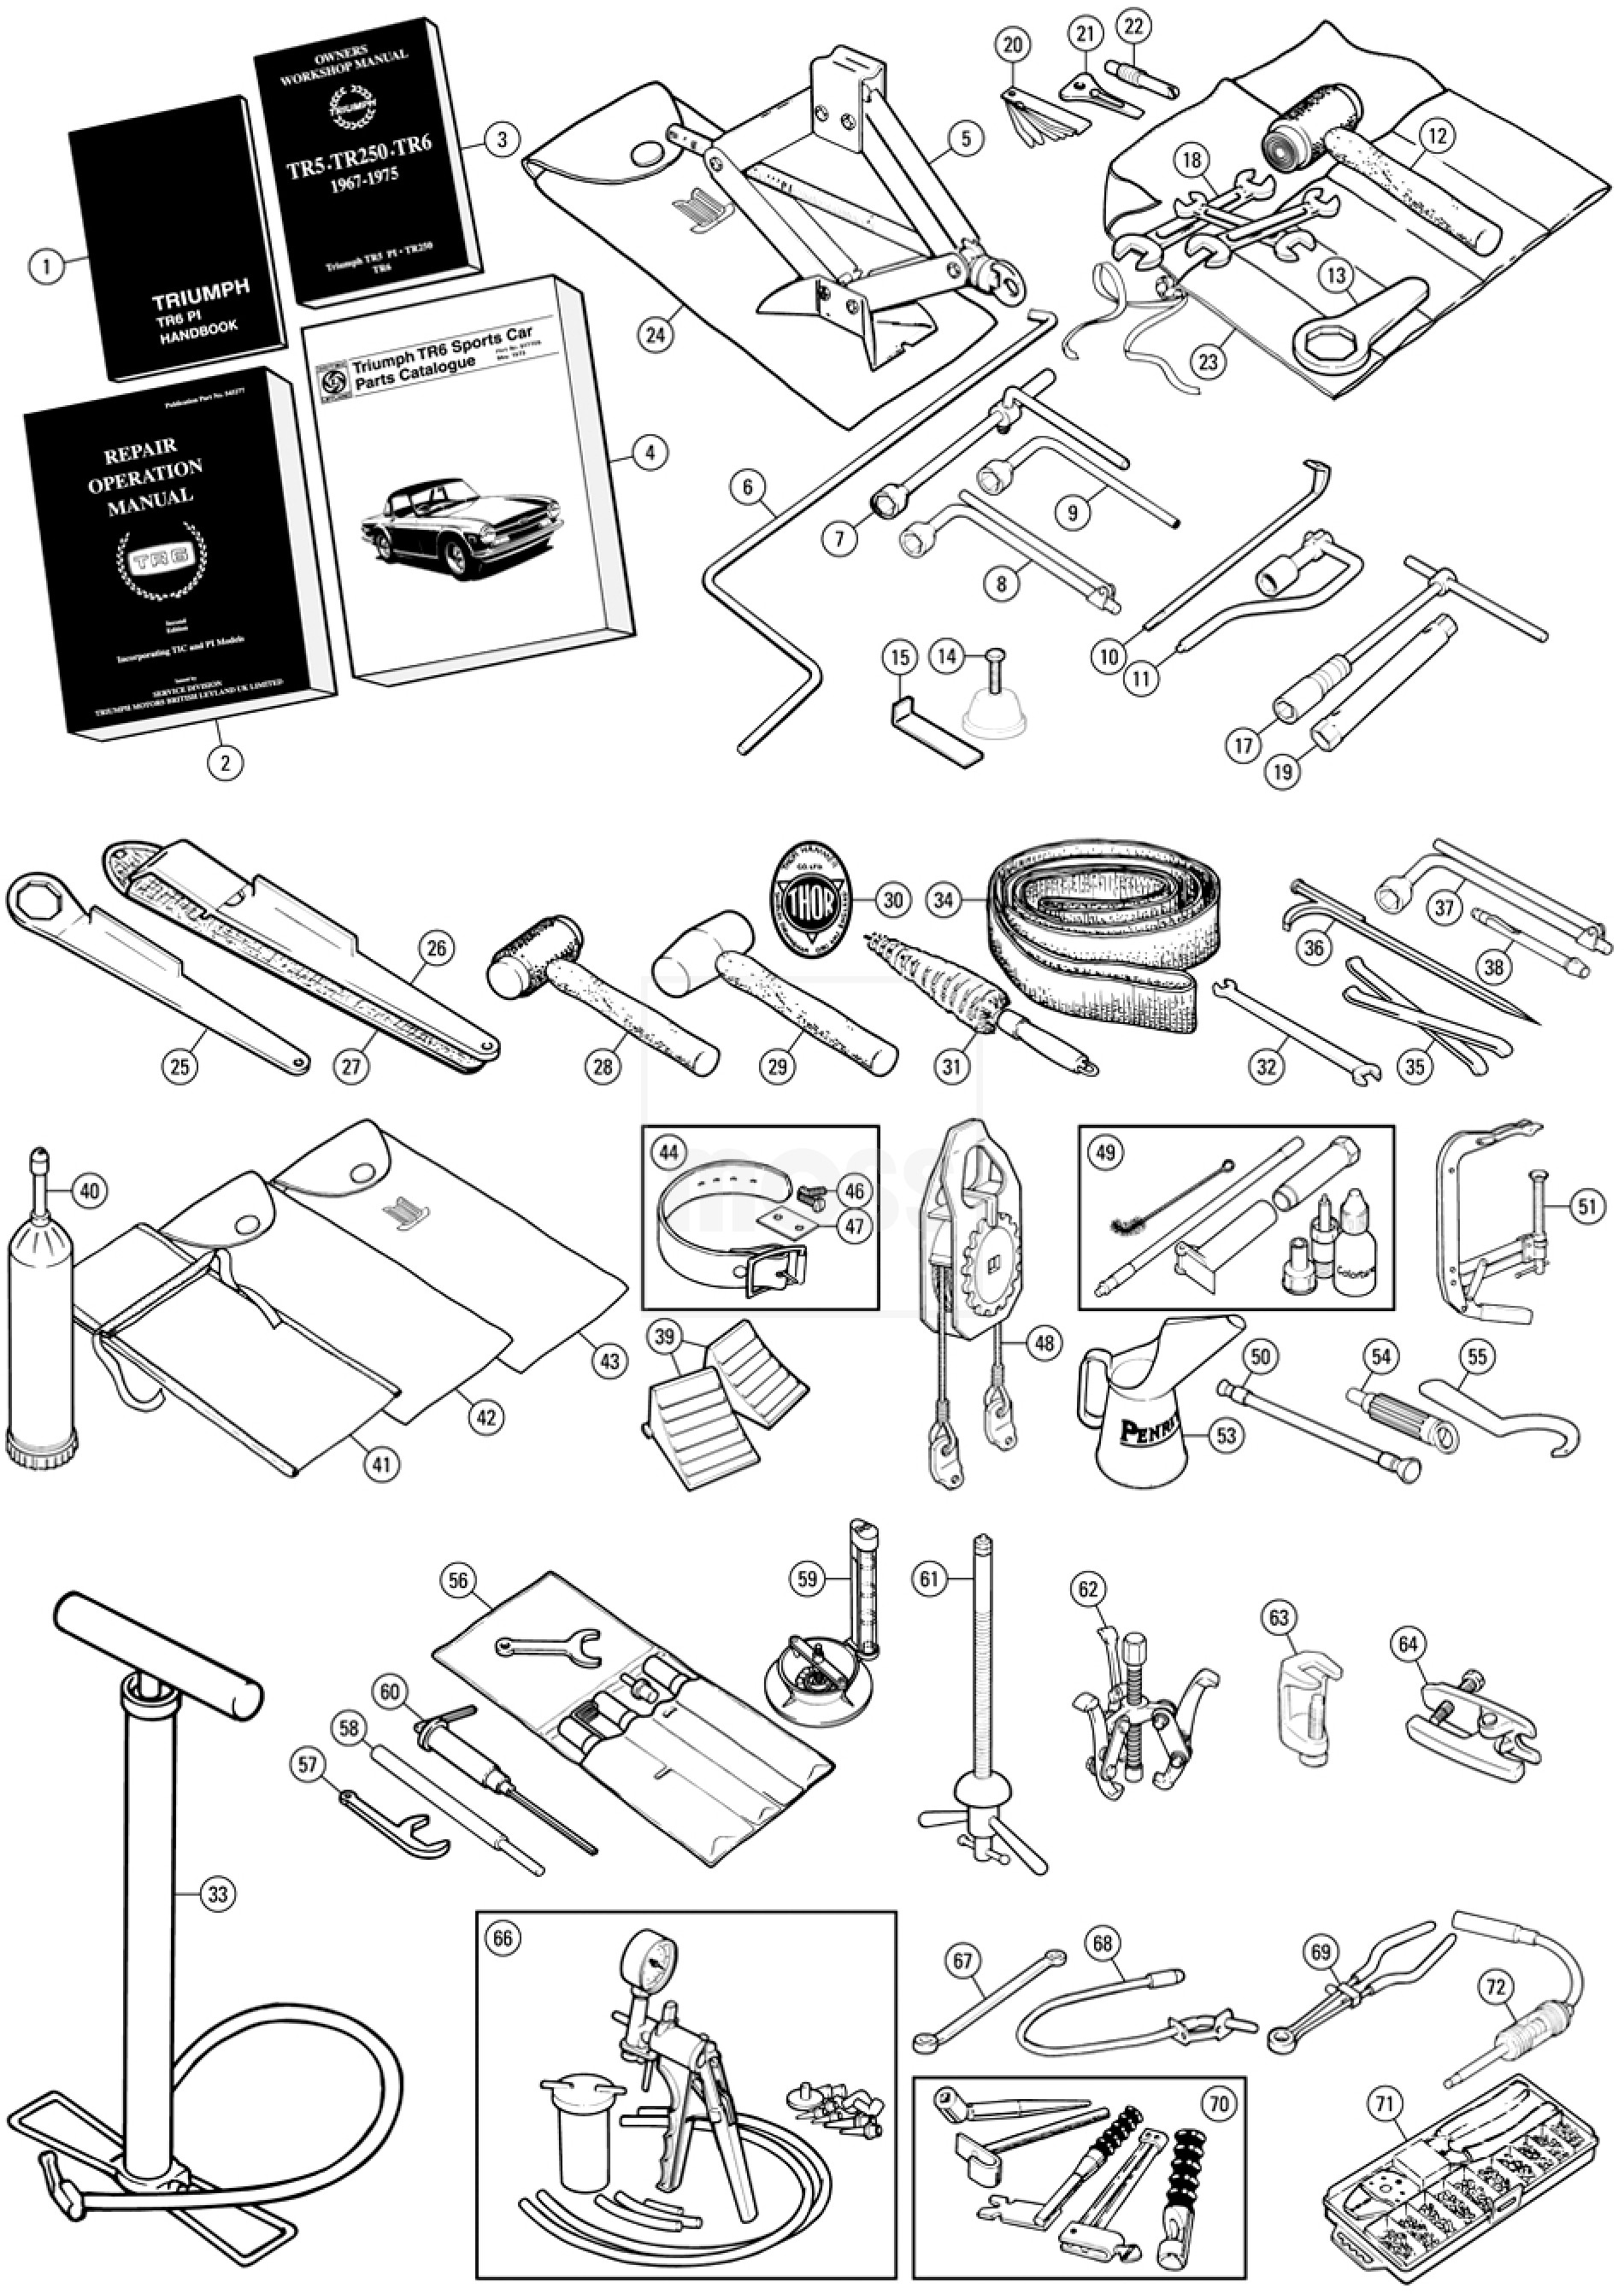 1973 plymouth duster fuse box diagram  plymouth  auto